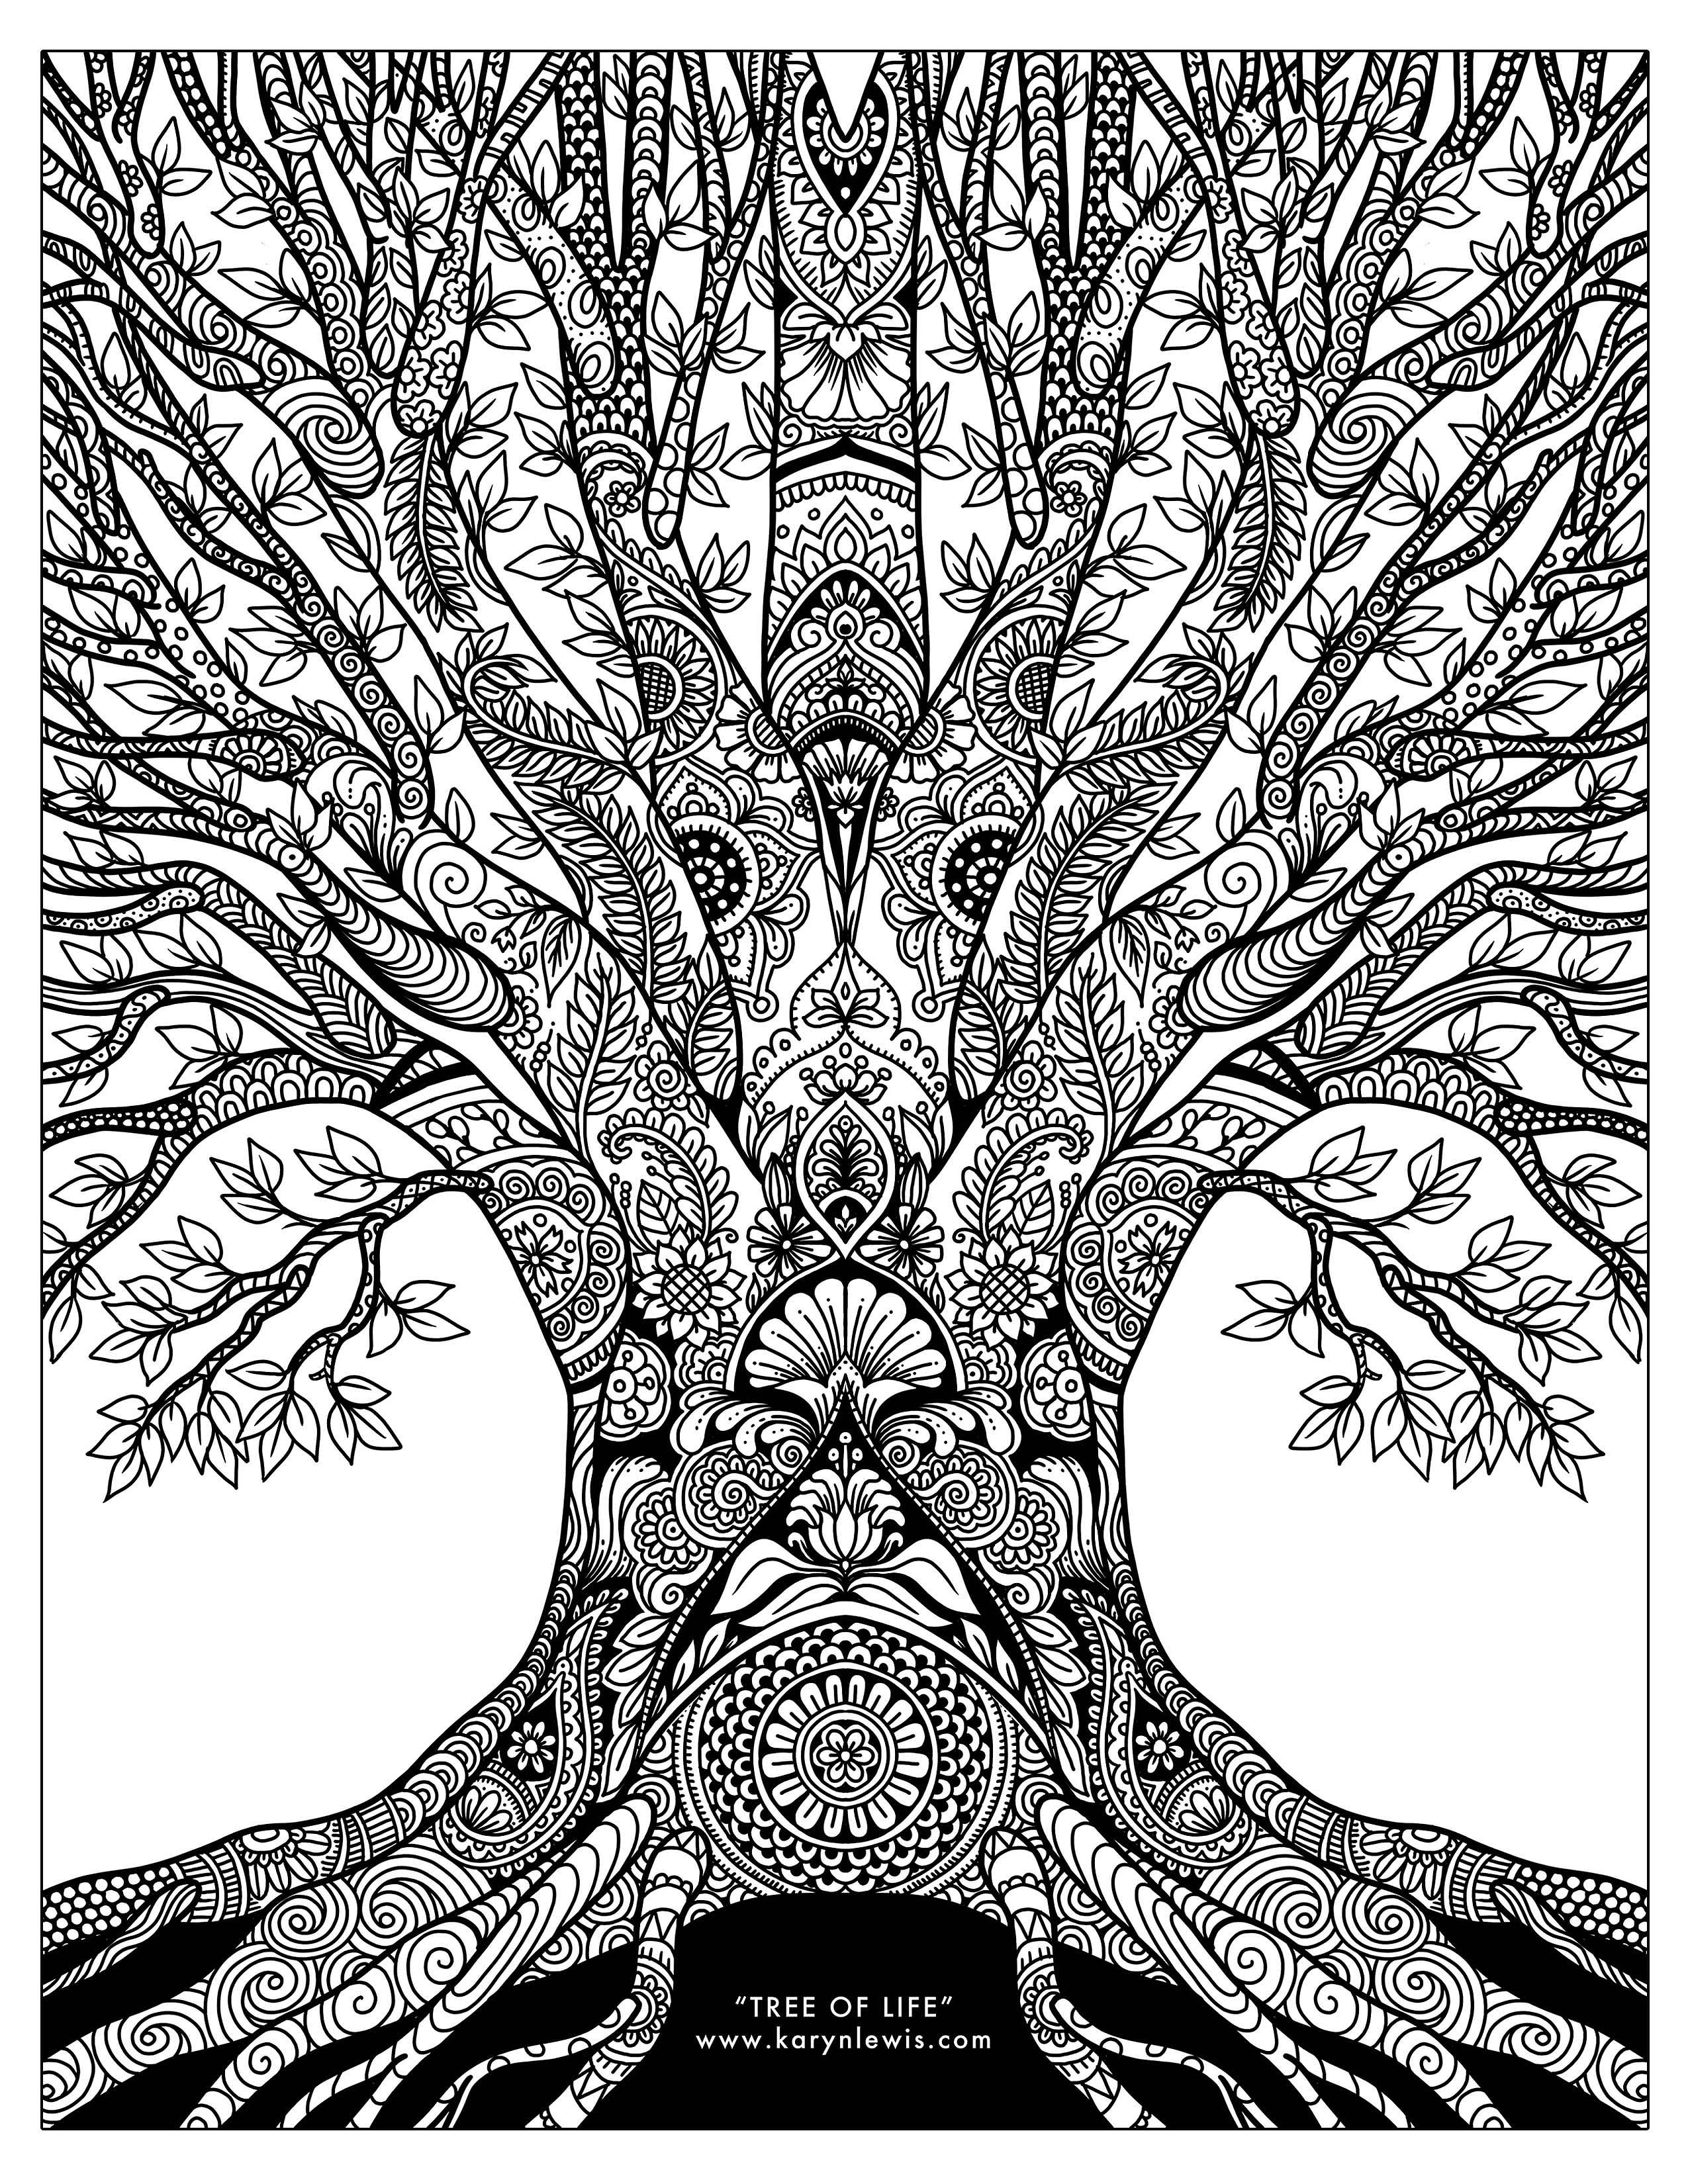 tree coloring pages quottree of lifequot doodle art free adult coloring page karyn coloring tree pages